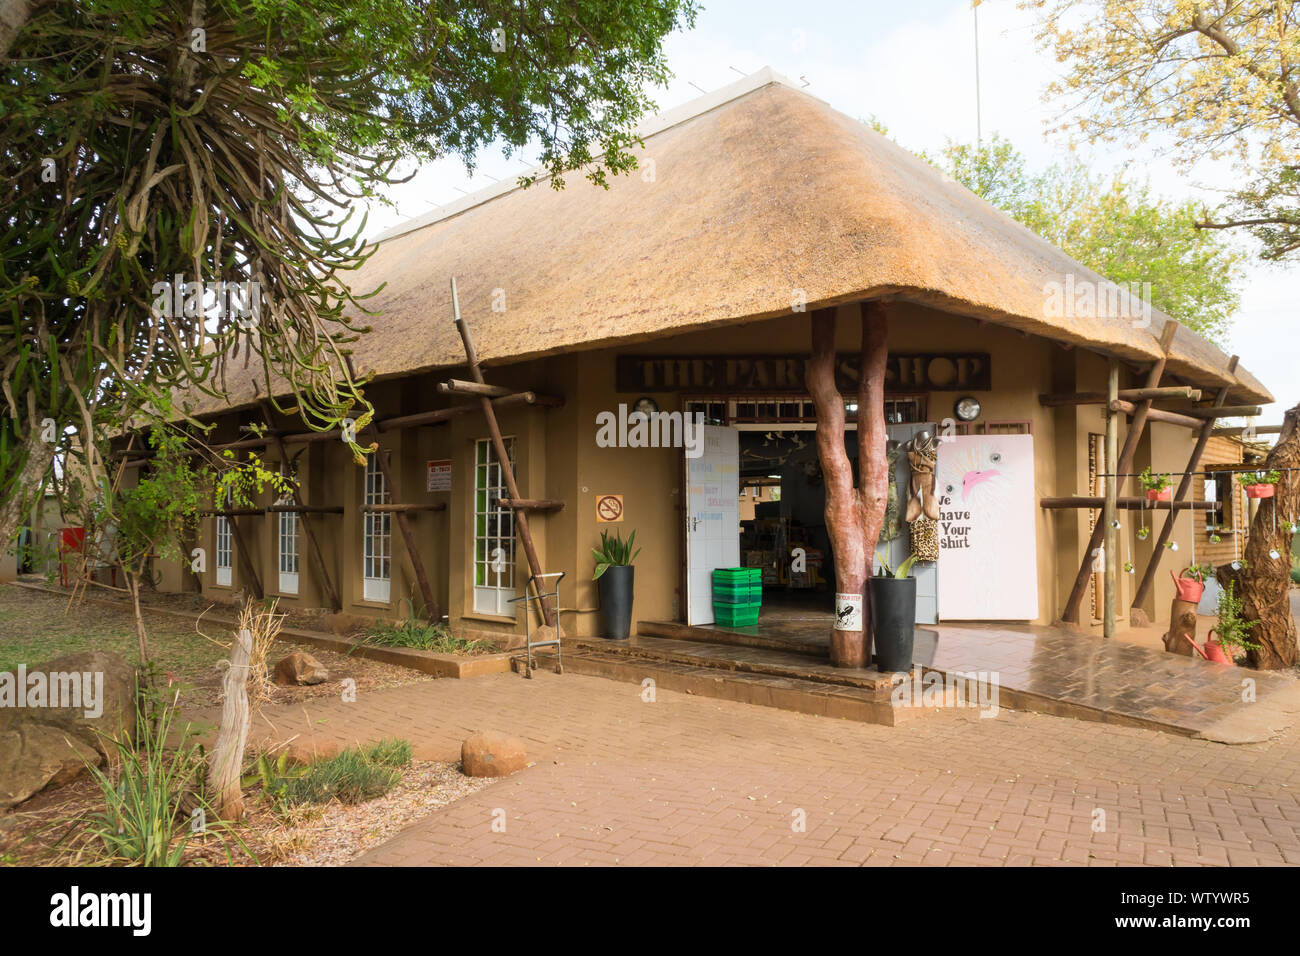 Crocodile Bridge rest camp shop or provisions store under thatch roof in Kruger National Park, Mpumalanga, South Africa Stock Photo